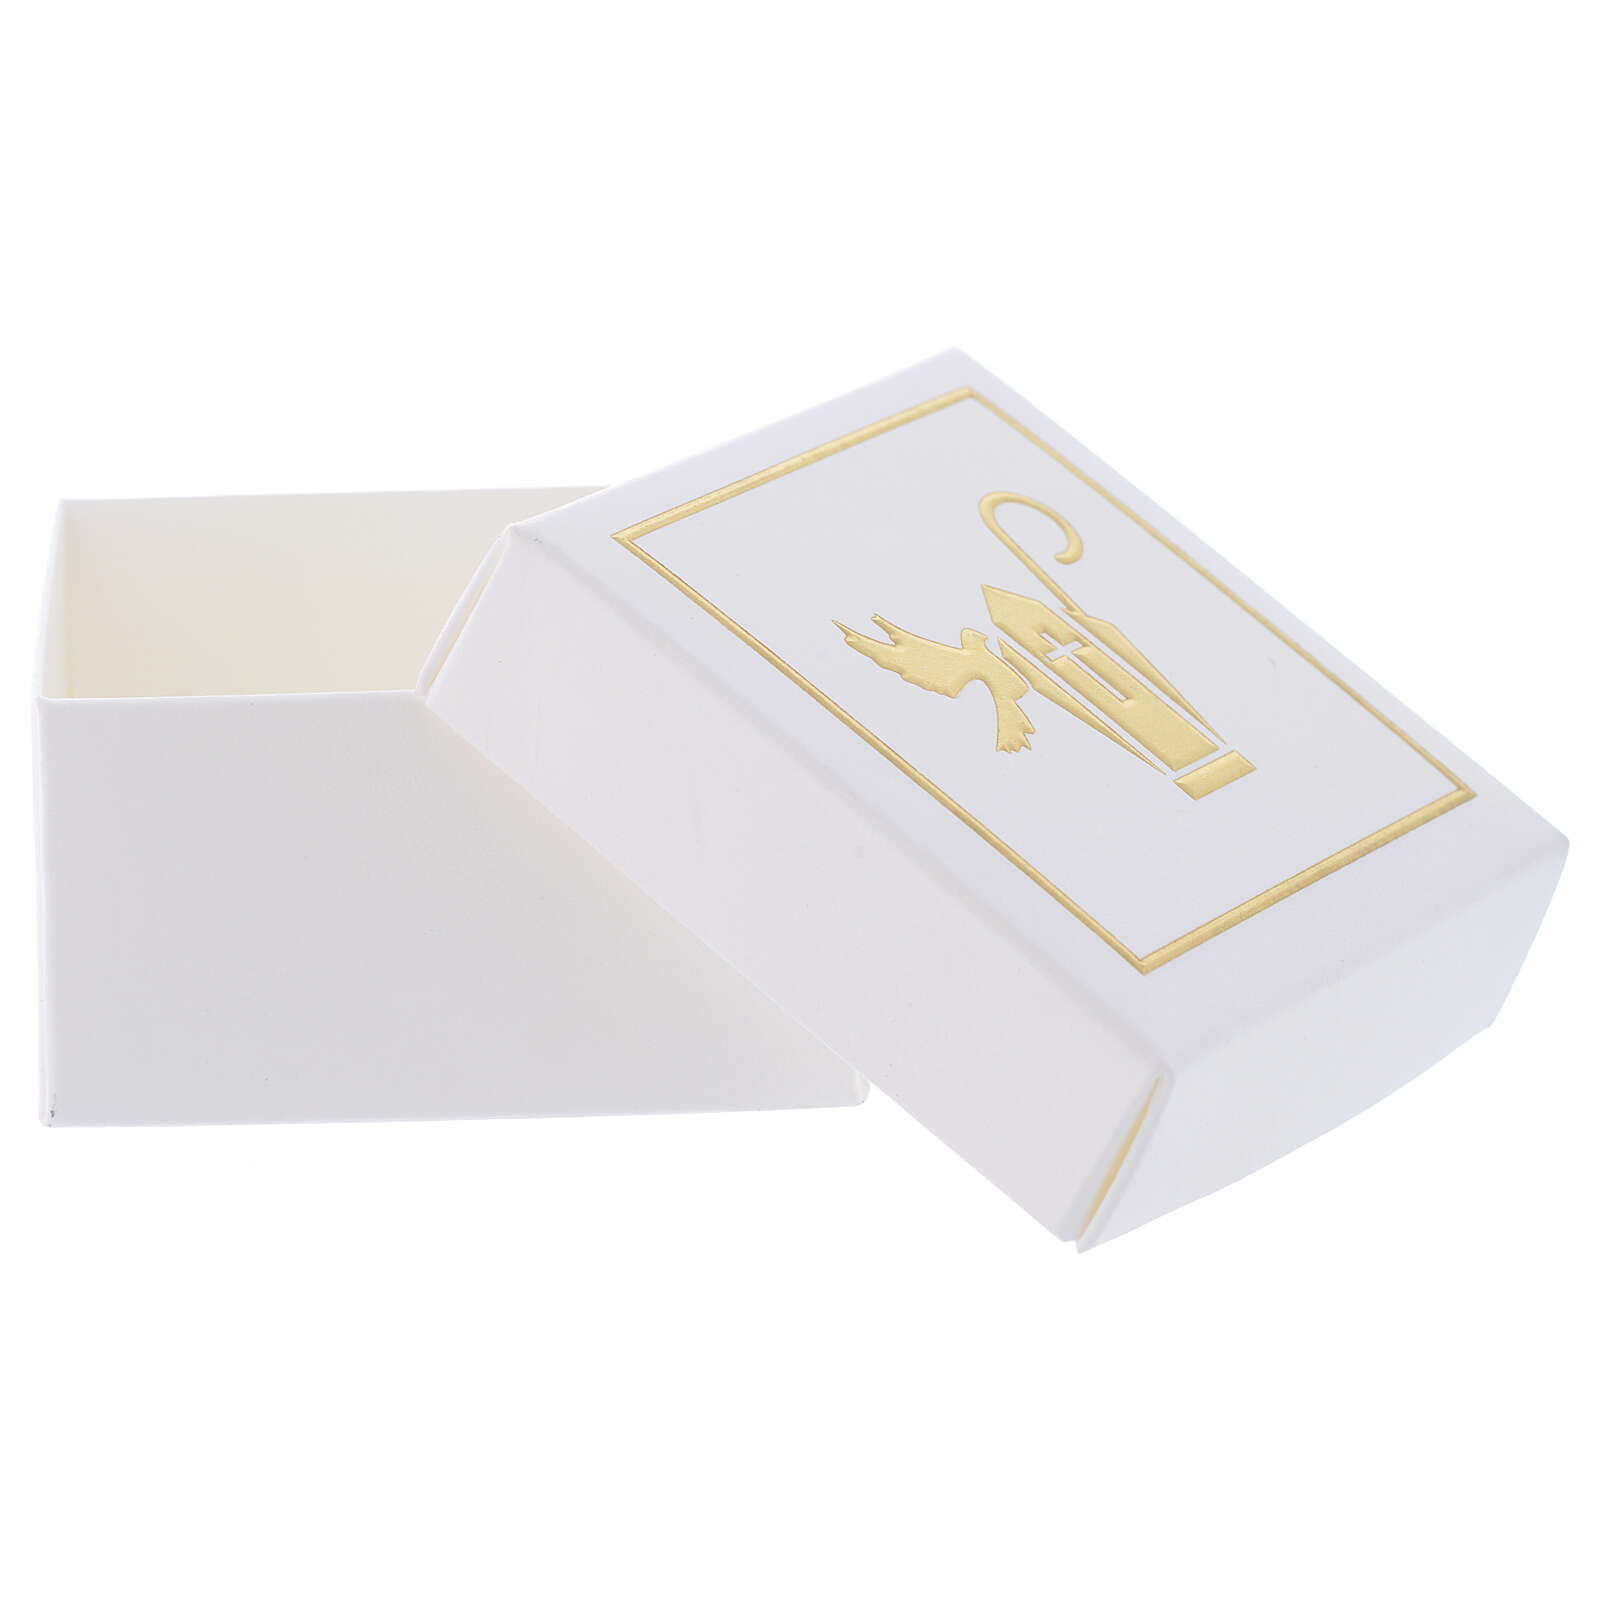 Gift box Confirmation favor white and gold 2.5x2.5 in 3